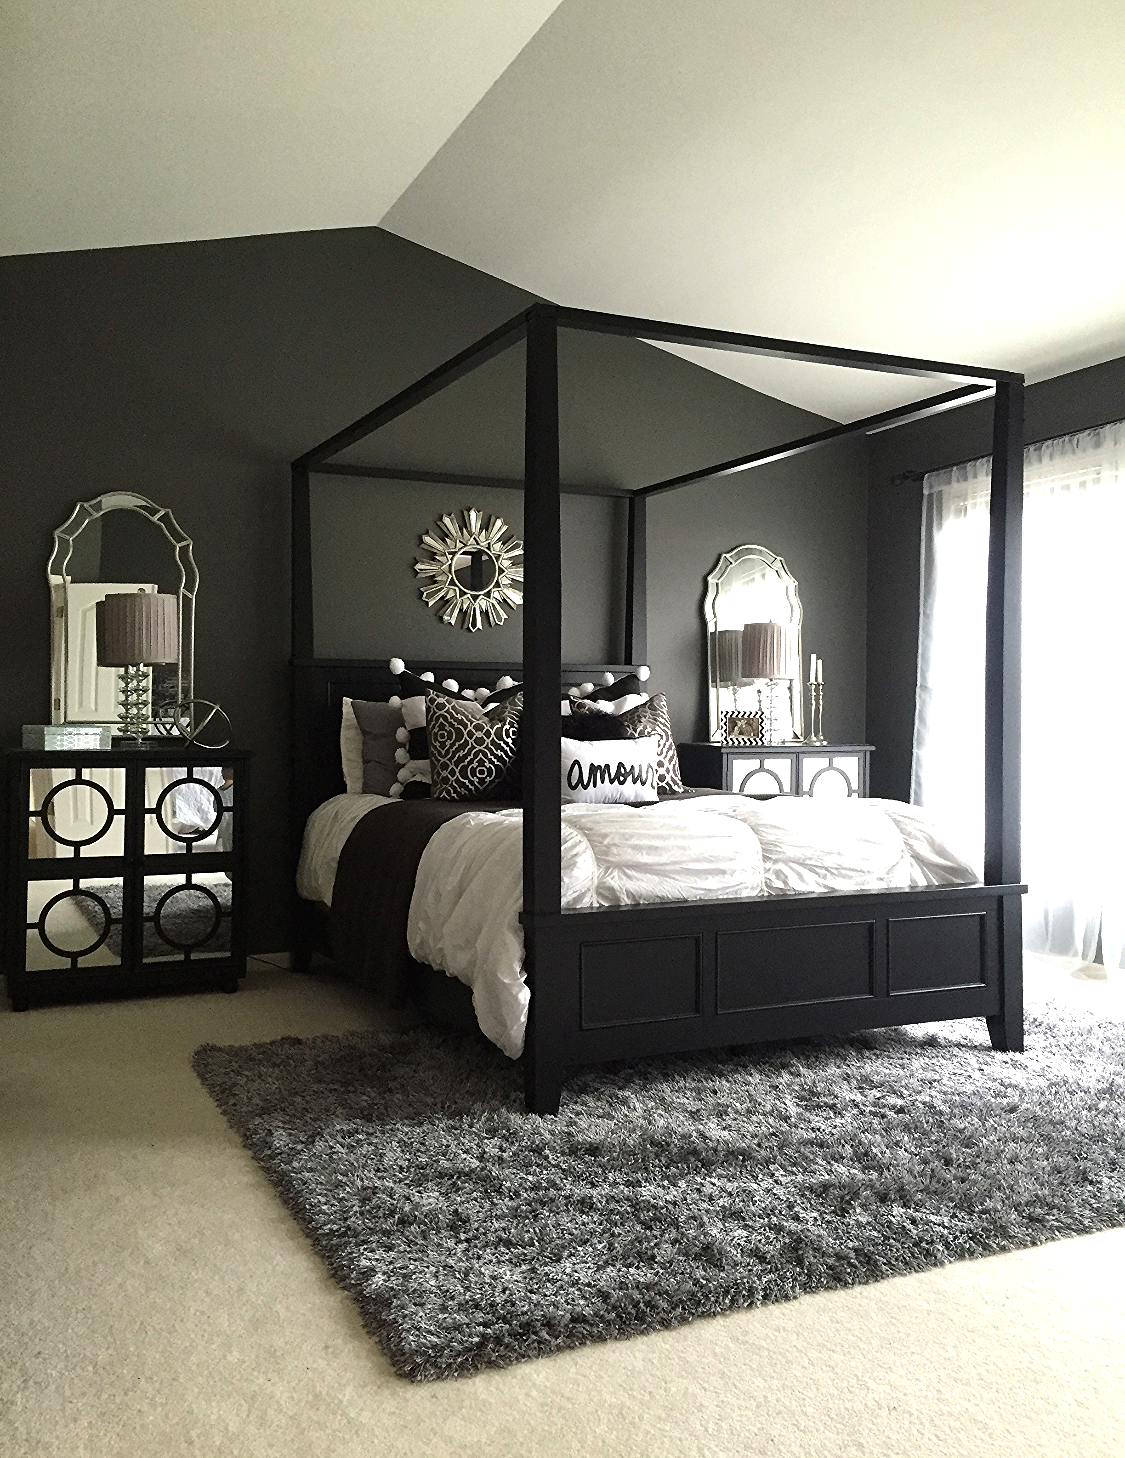 Home Goods played a huge roll in this master bedroom redo! Cozy rug ...